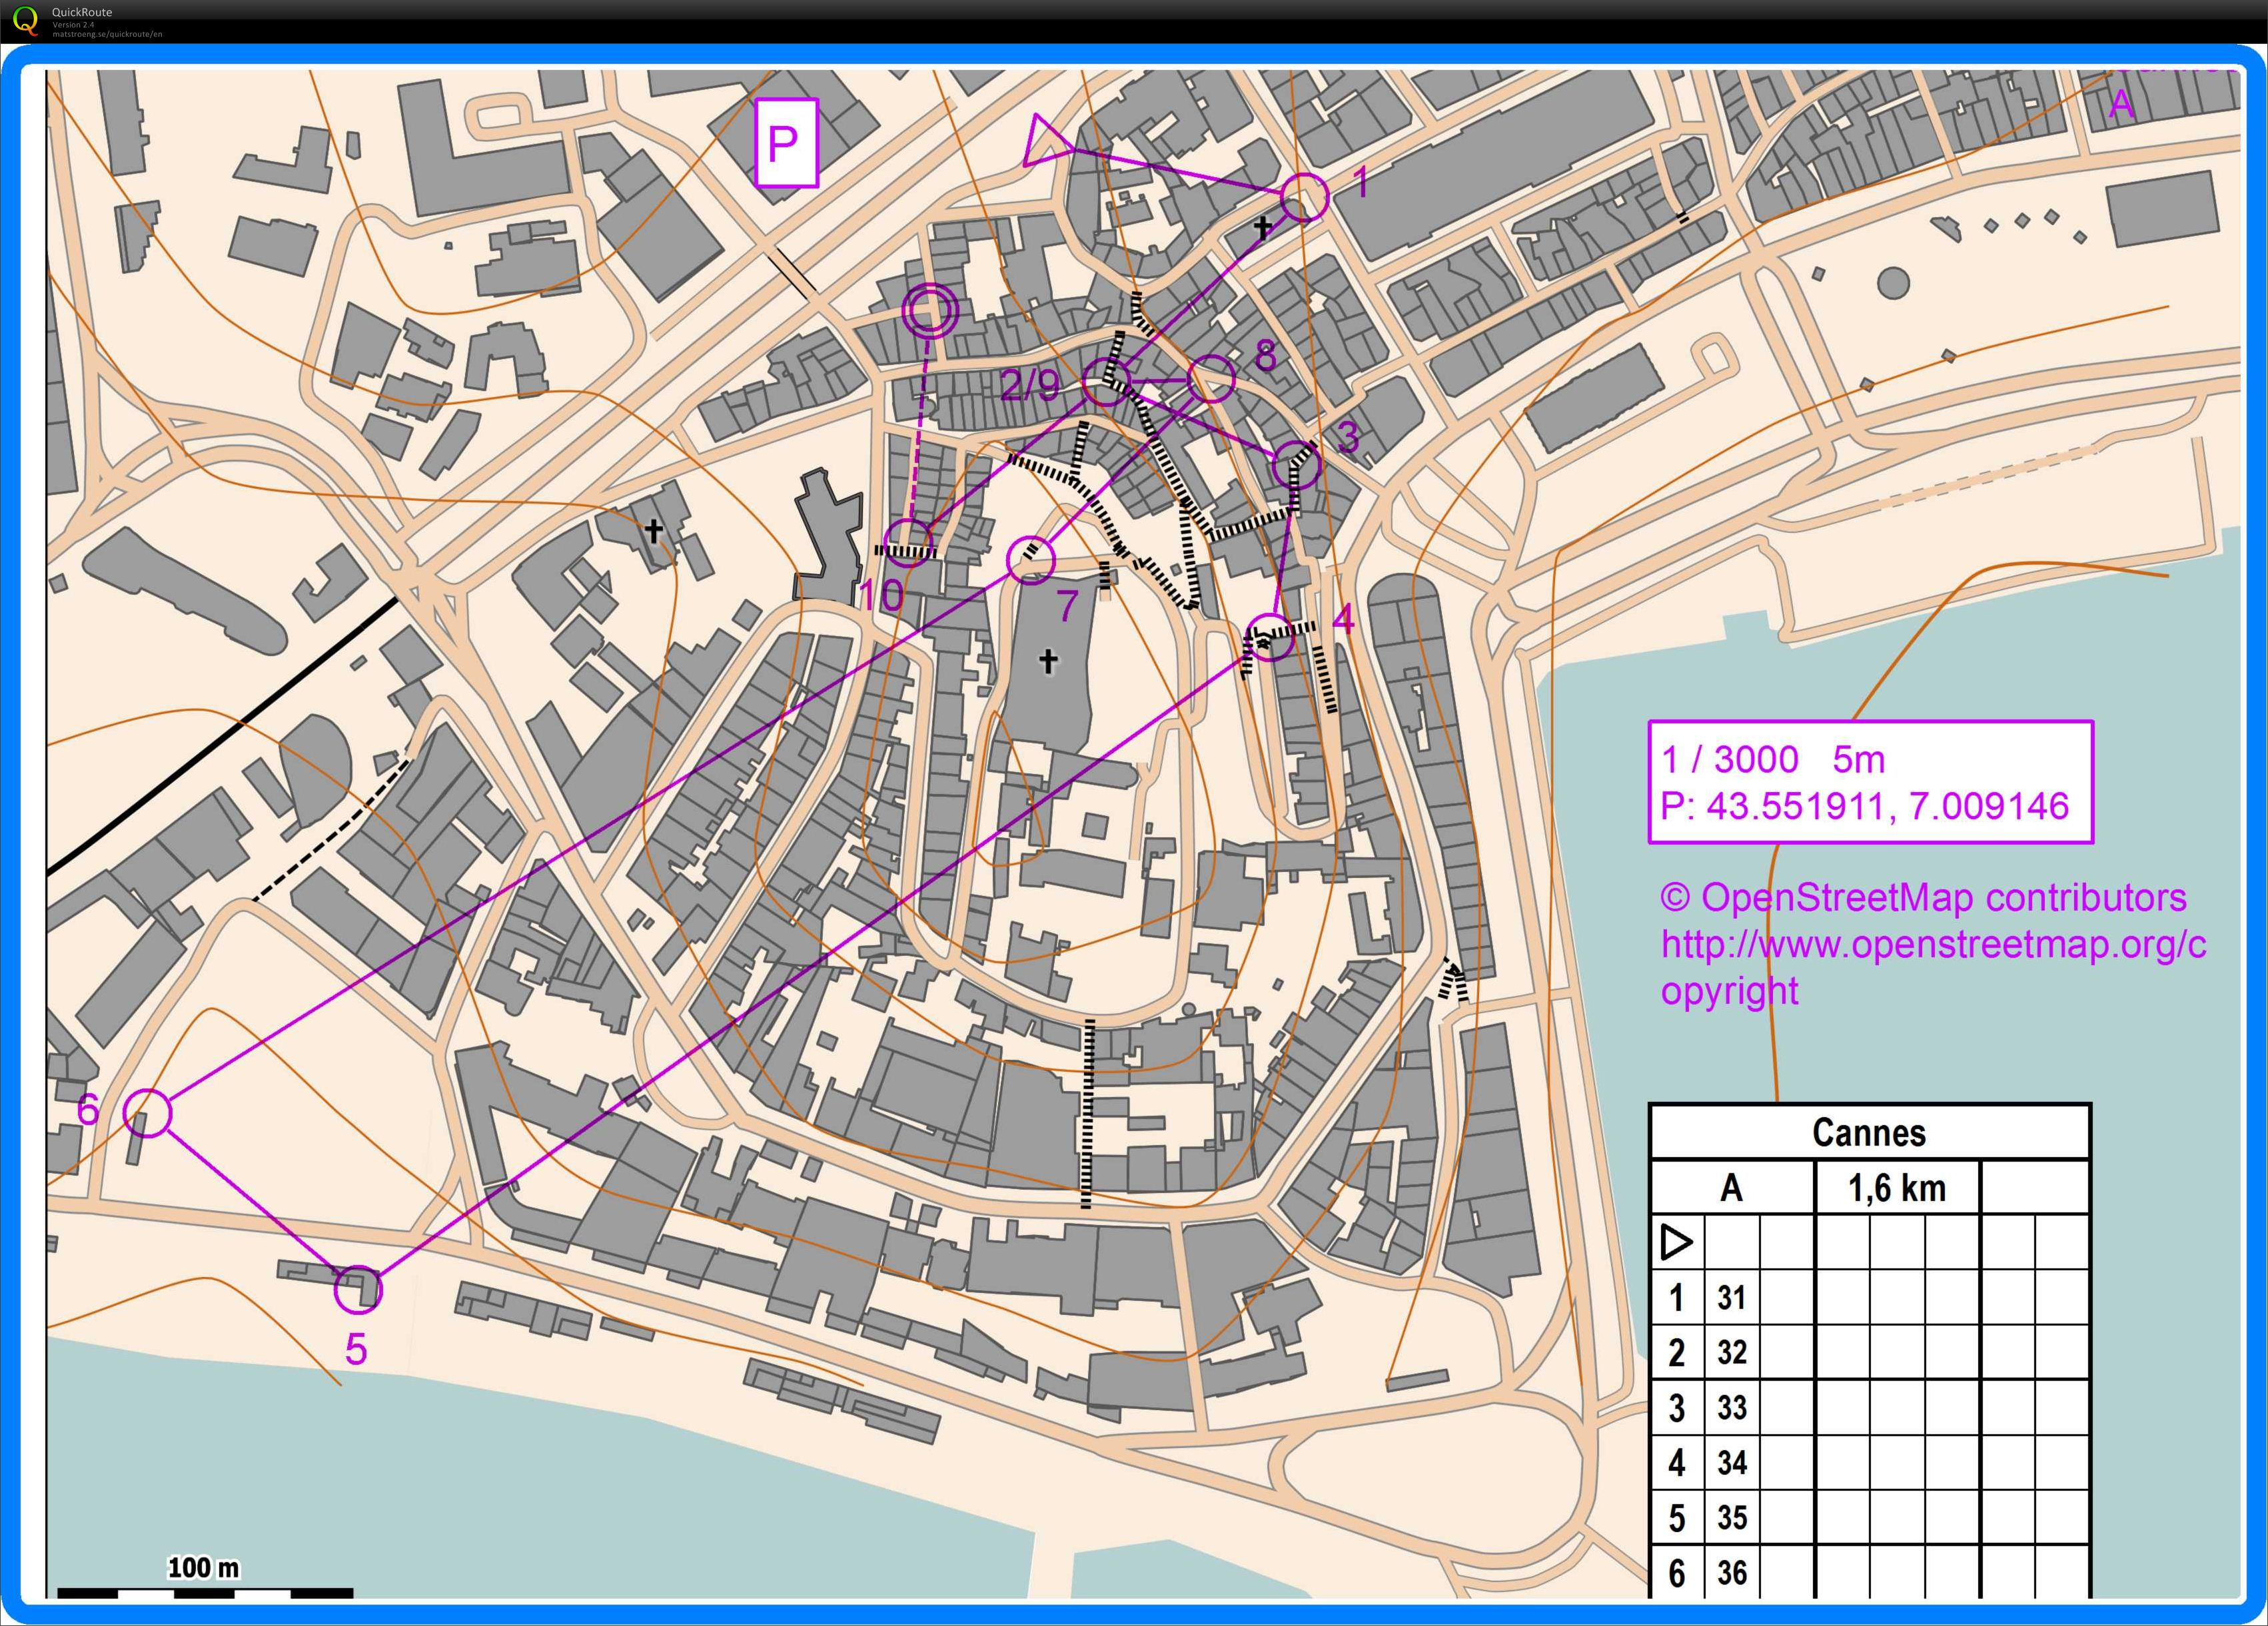 Cannes old town December 12th 2012 Orienteering Map from Jens